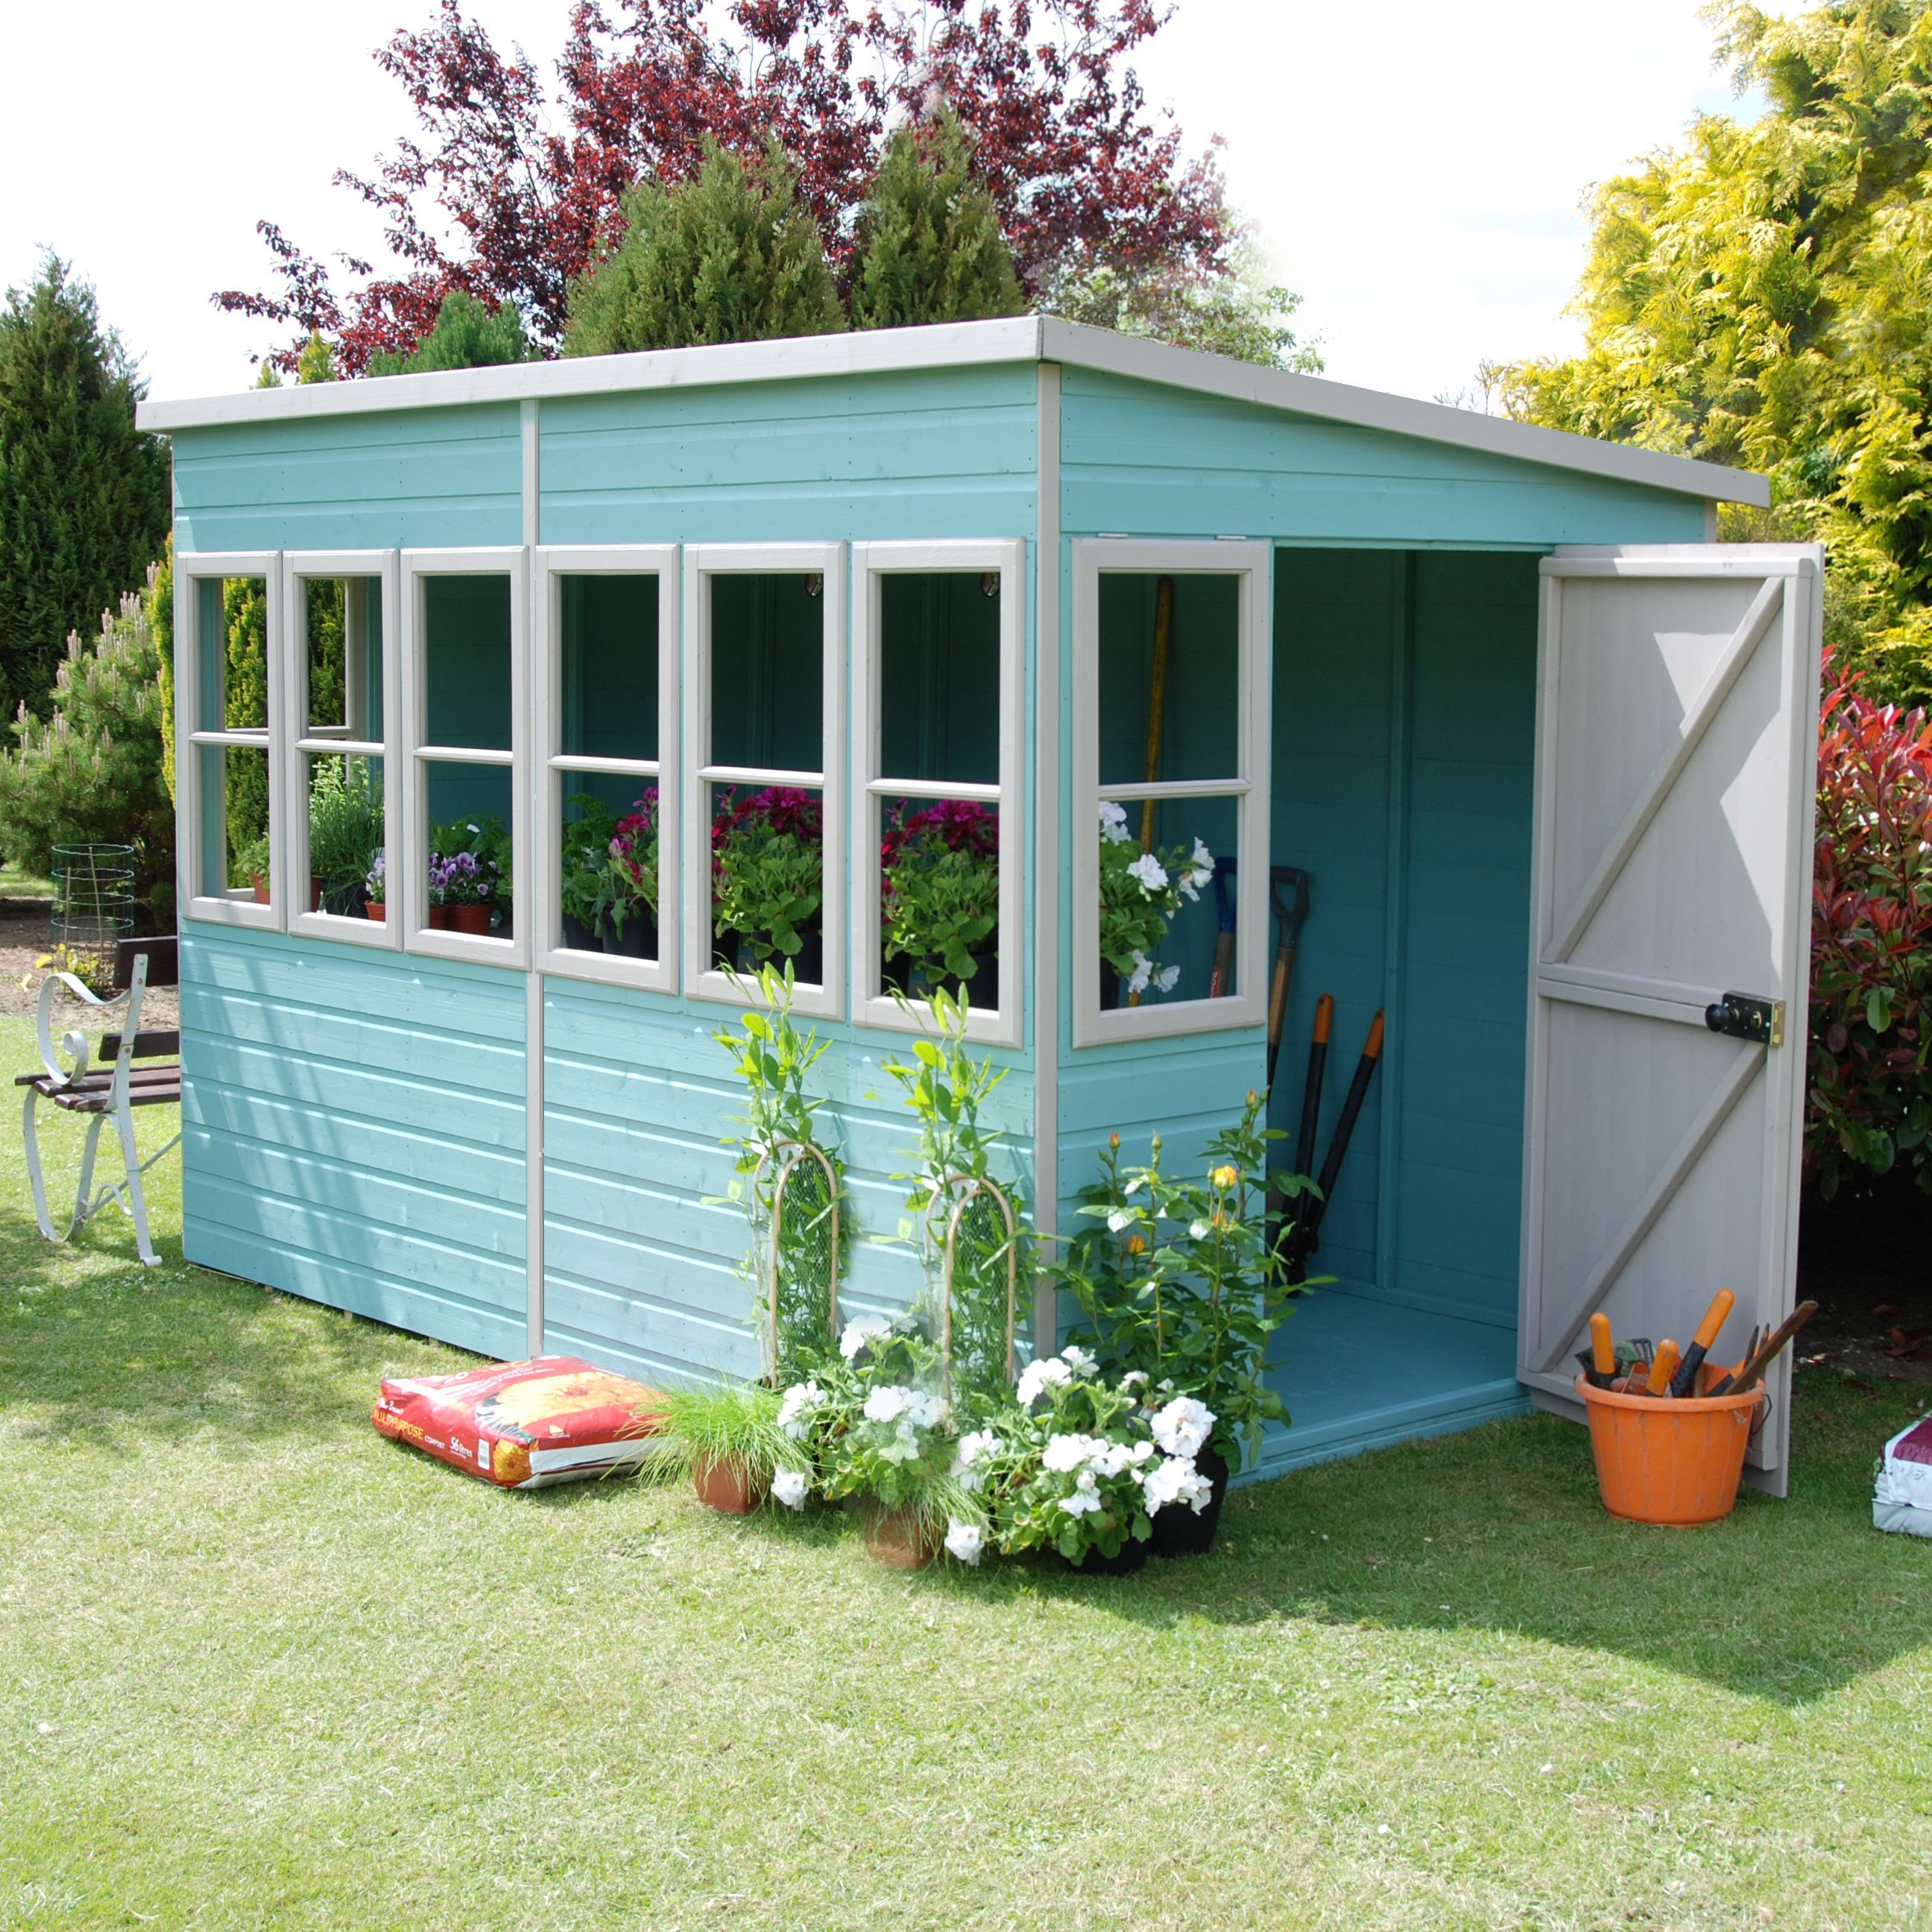 10x6 Sun Pent Pent Shiplap Wooden Shed B Q For All Your Home And Garden Supplies And Advice On All The Latest Diy Trends Shiplap Timber Shiplap Sheds Shed